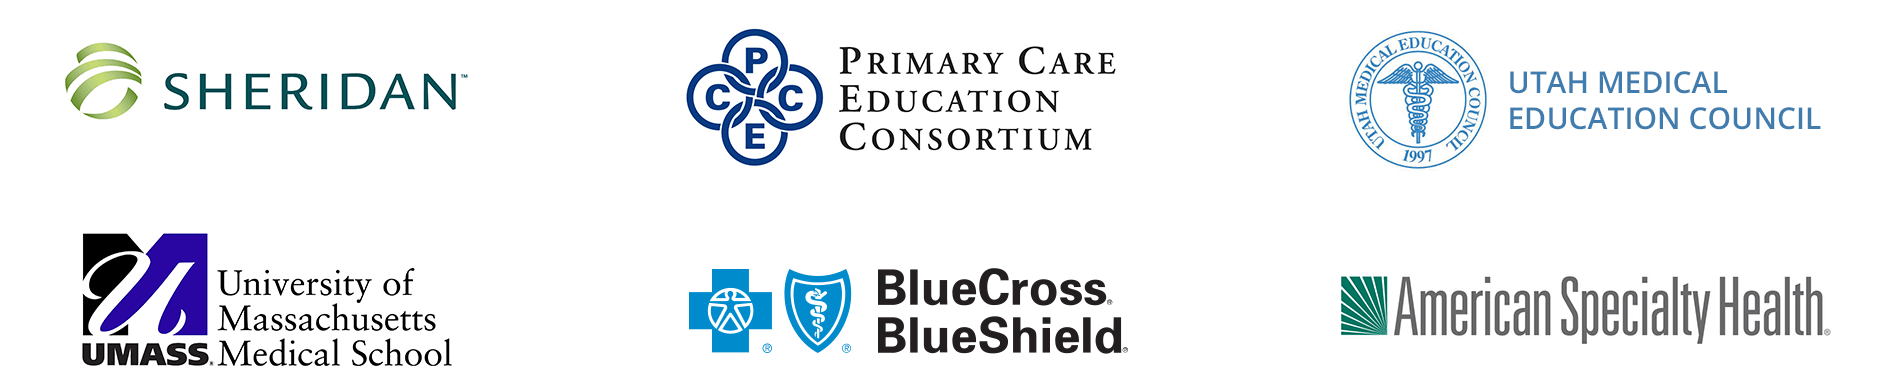 Sheridan, Primary Education Consortium, Utah Medical Education Council, University of Massachussets Medical School, Blue Cross Blue Shield, American Speciality Health